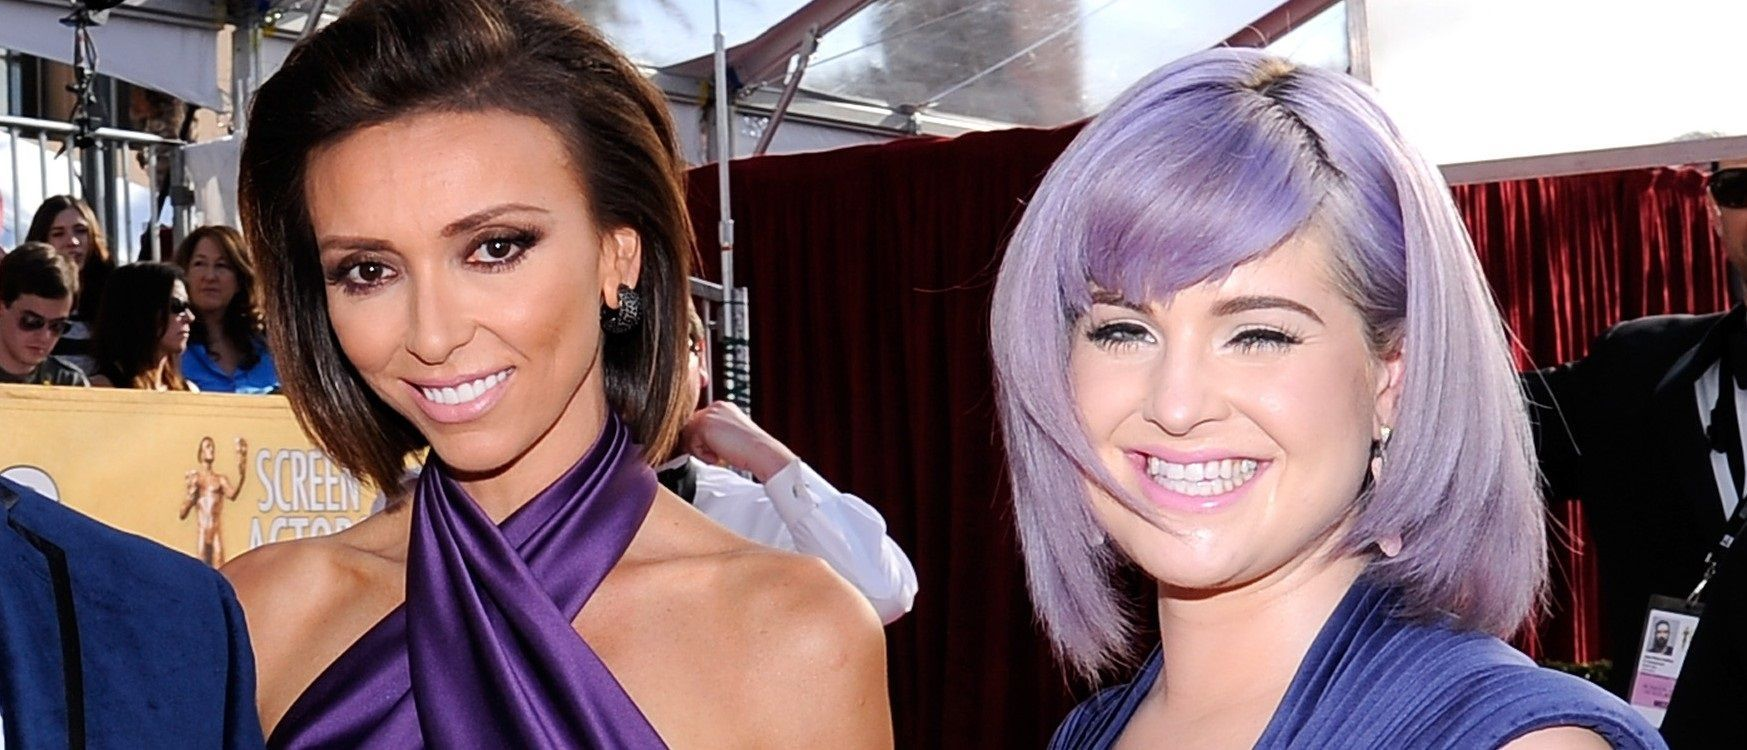 kelly osbourne vs giuliana rancic 2015 gossip